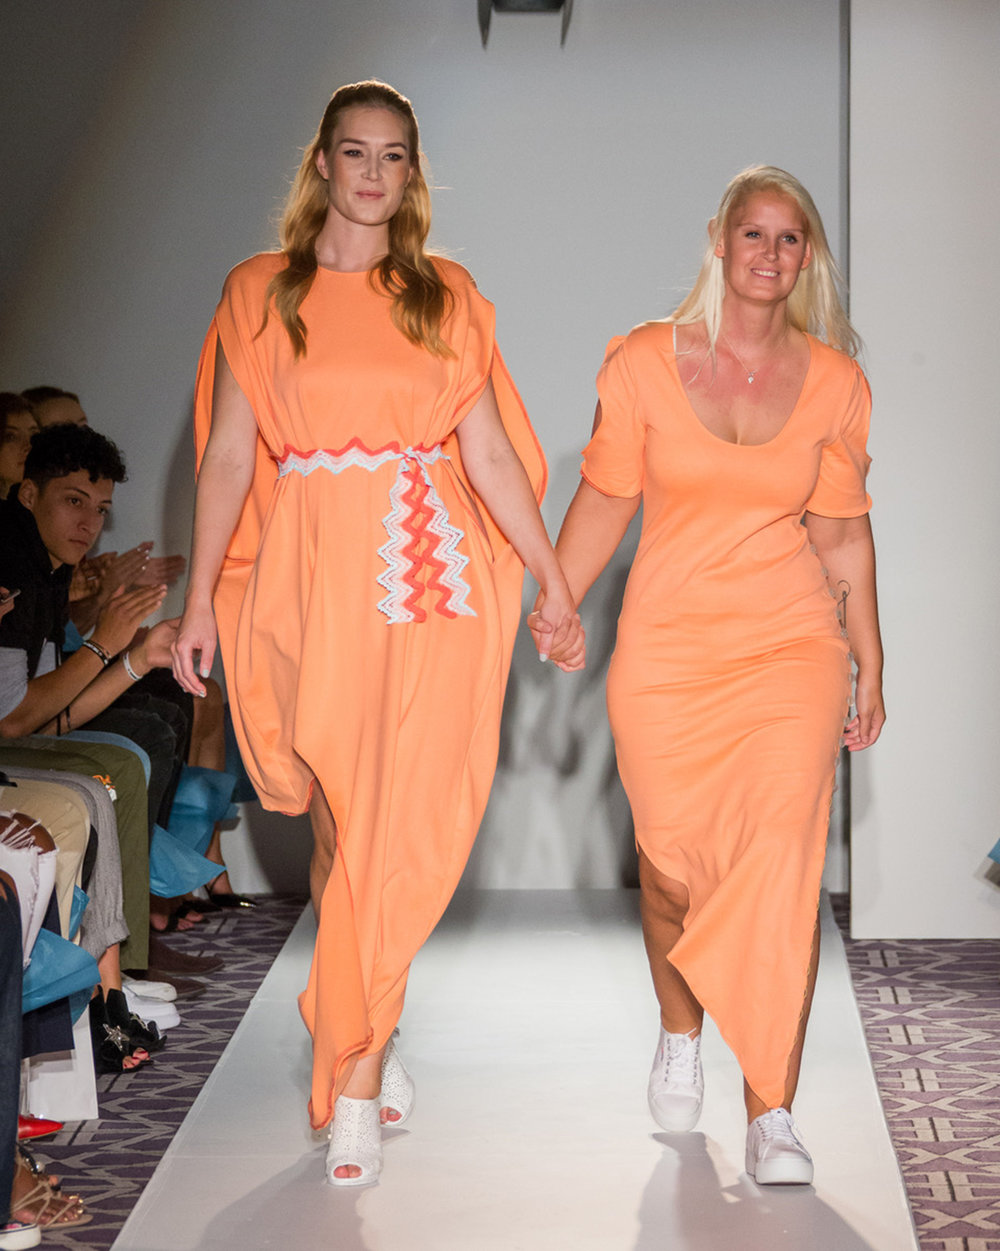 Jannie Gefle and Pernille Fristad on the catwalk in New York published in 9to9 Daily.